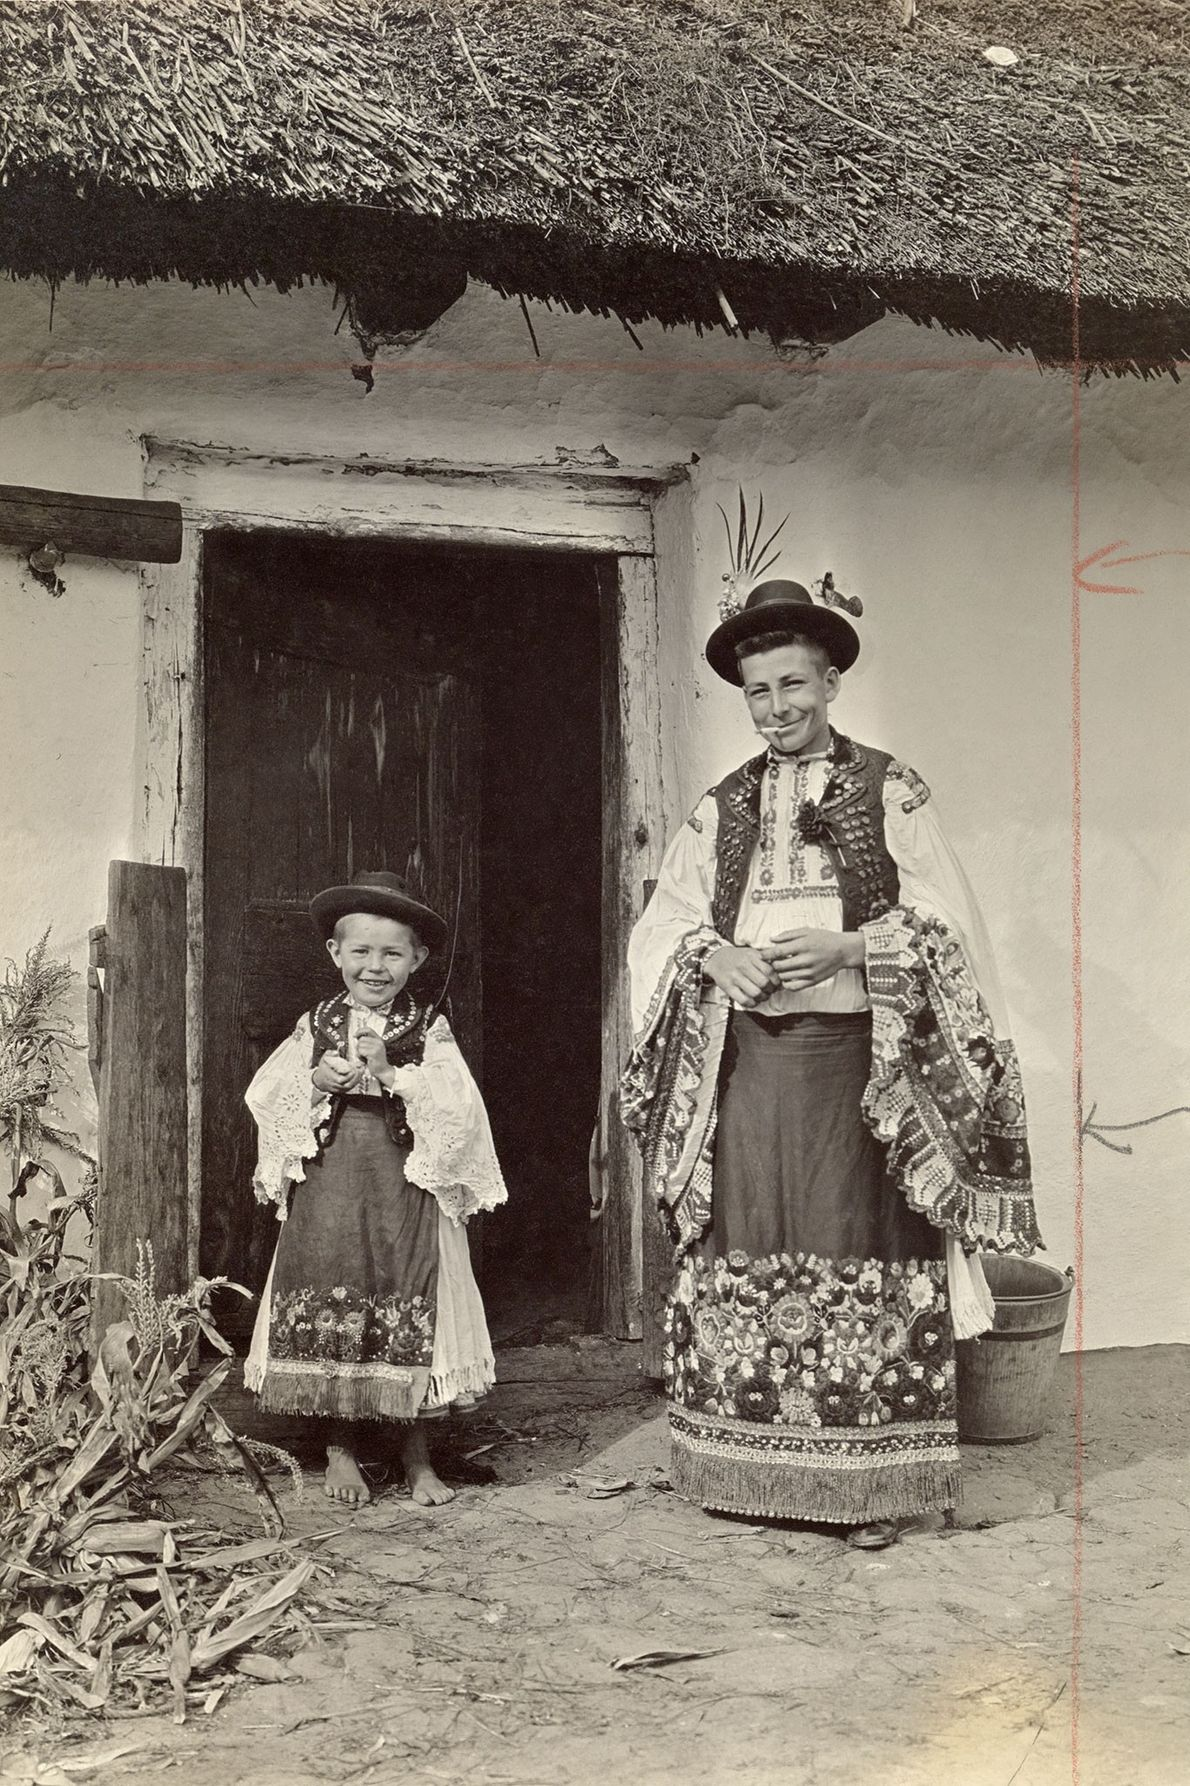 A father and son in similar traditional clothing pose for an informal portrait in Mezőkövesd, Hungary, ...